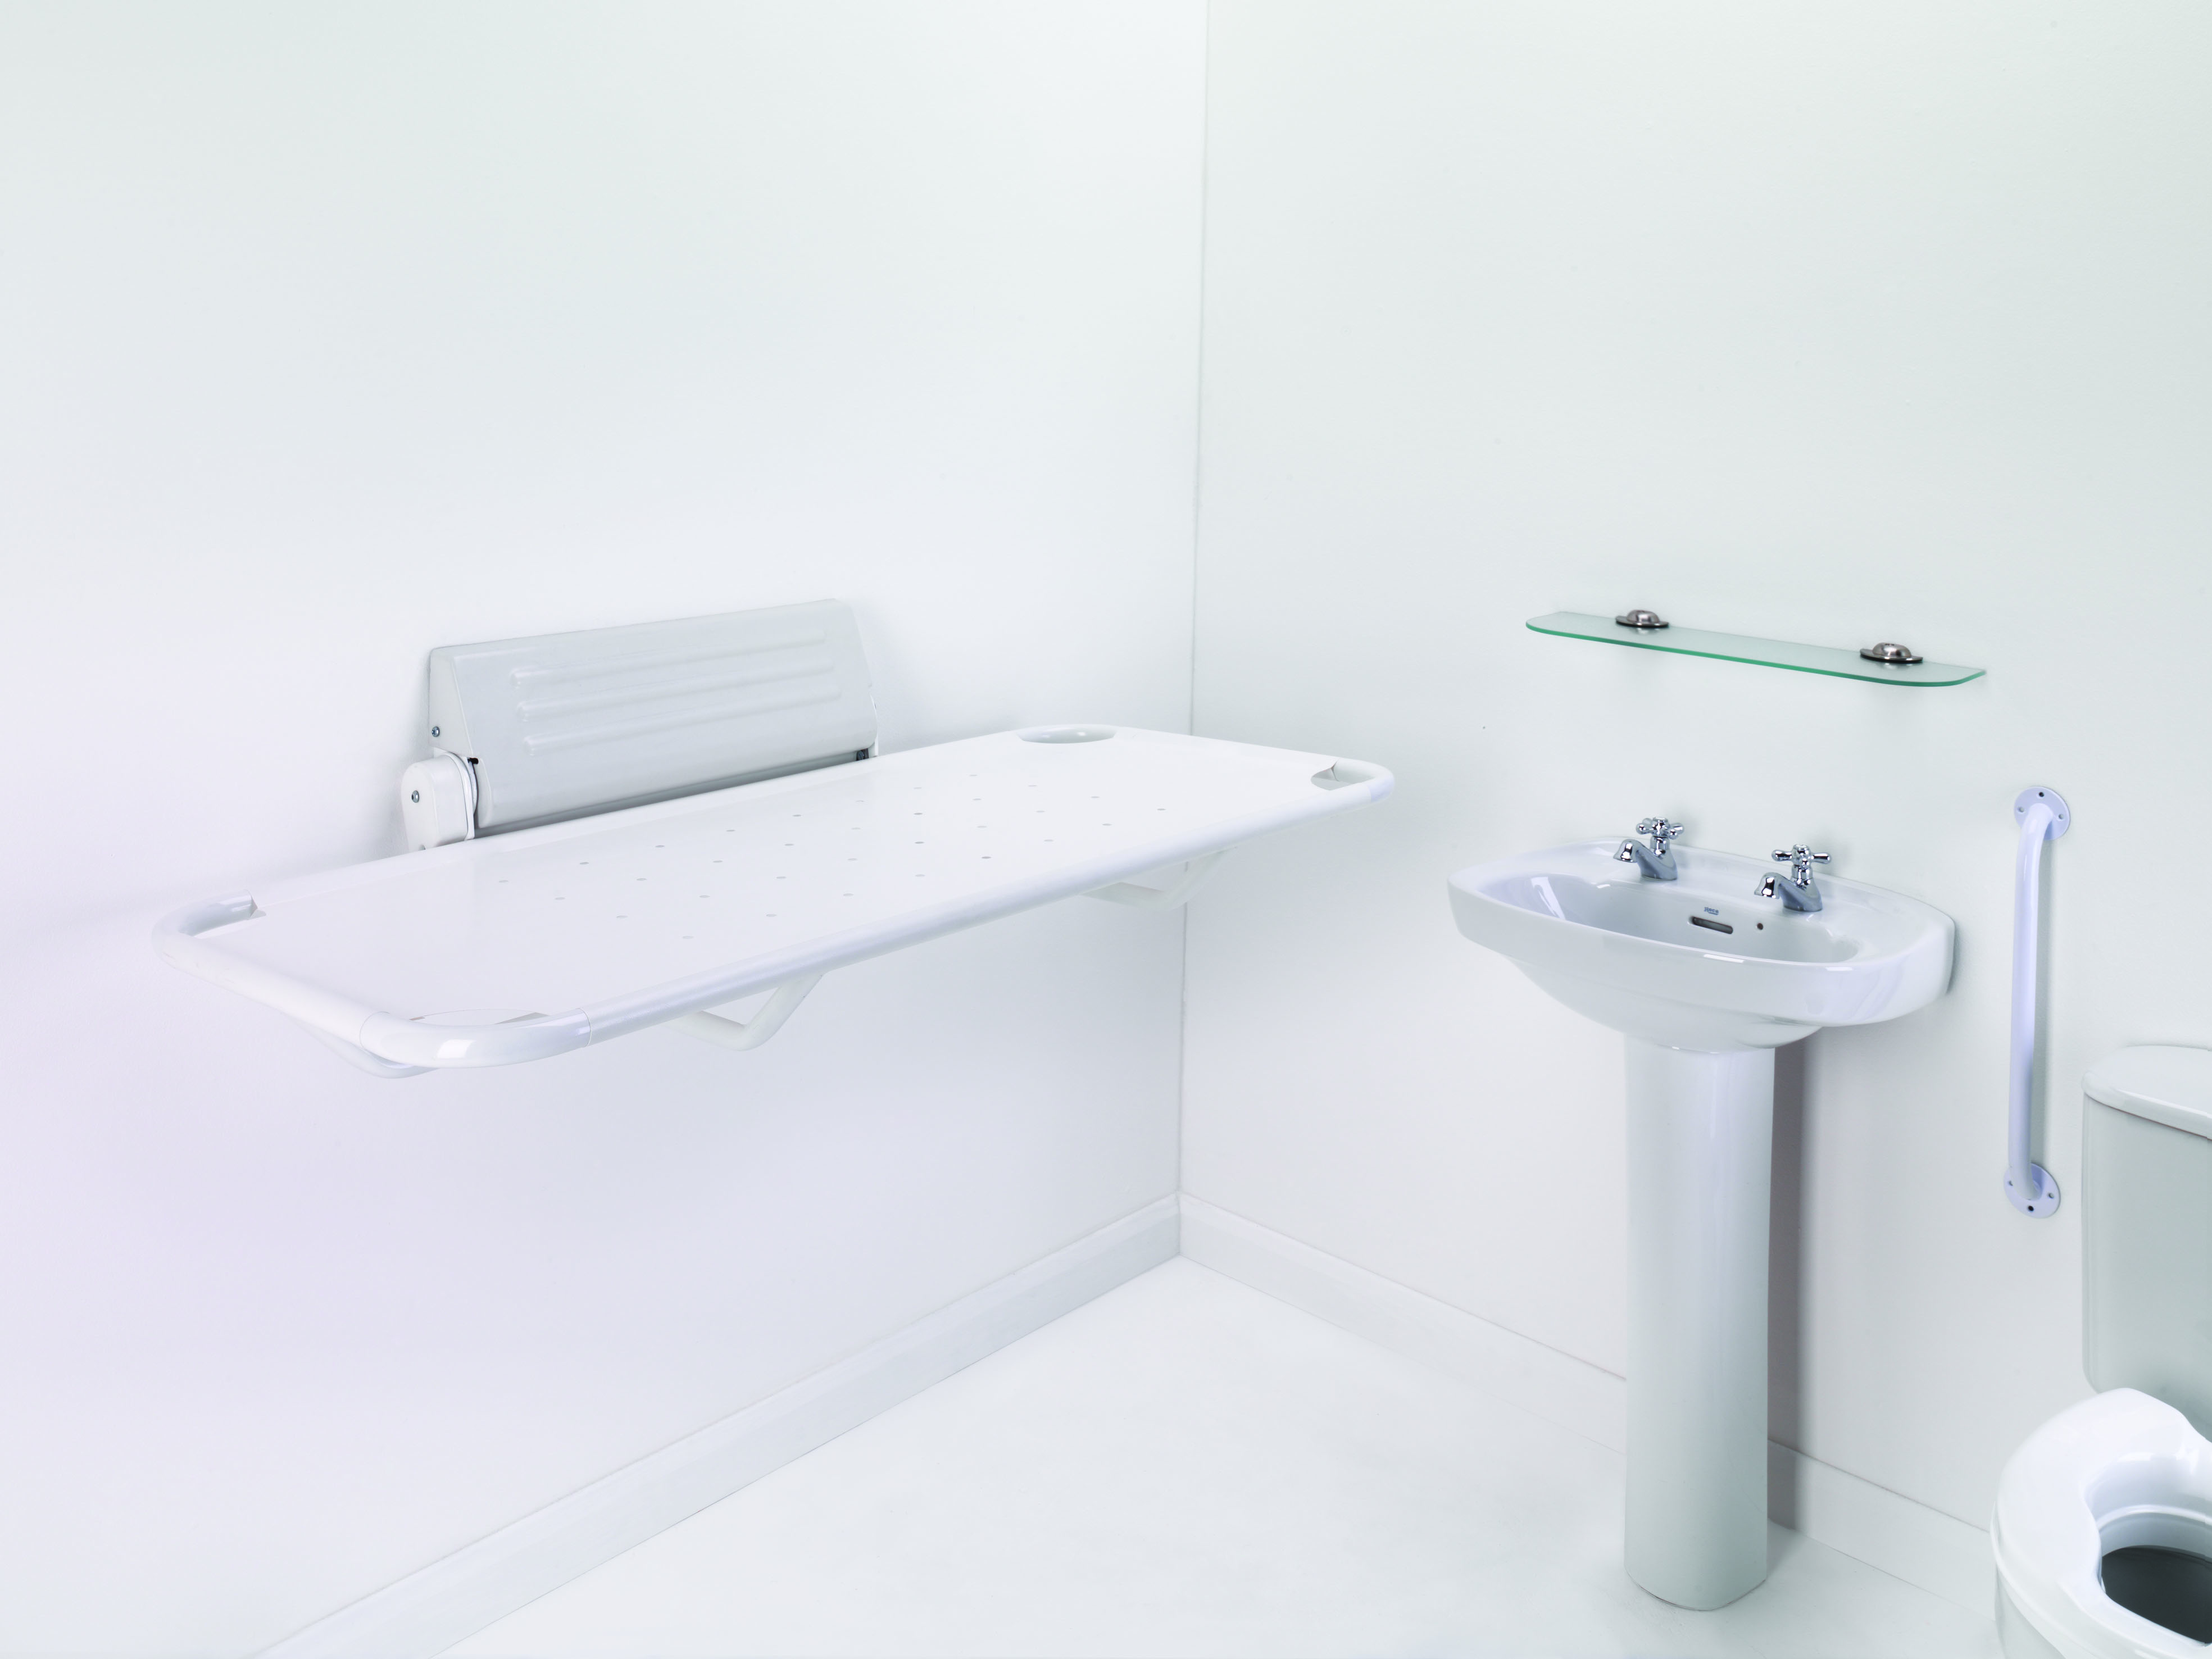 advance aqcura for accessibility chair every purpose trolleys dsc trolley shower